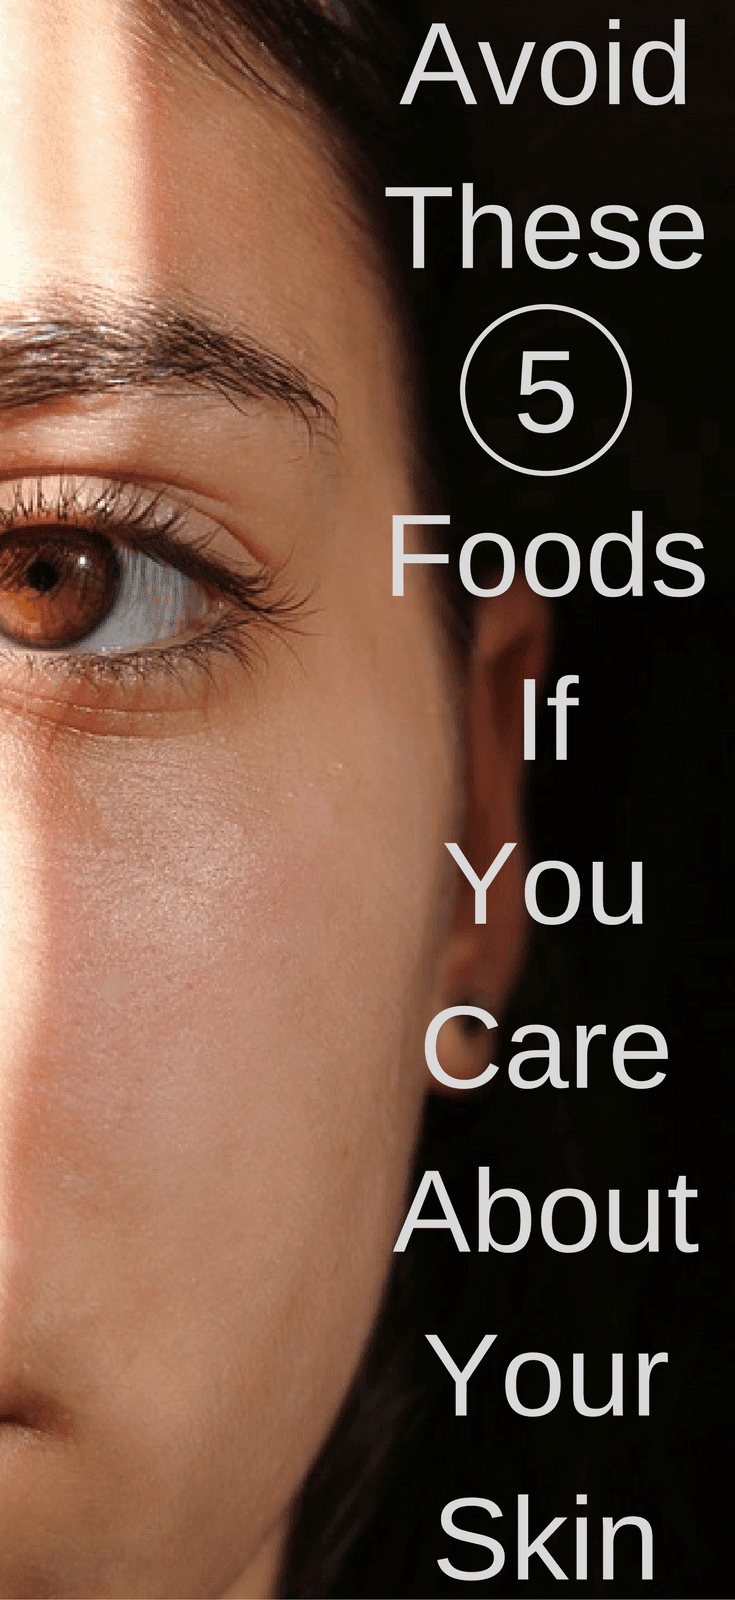 Avoid These 5 Foods If You Care About Your Skin